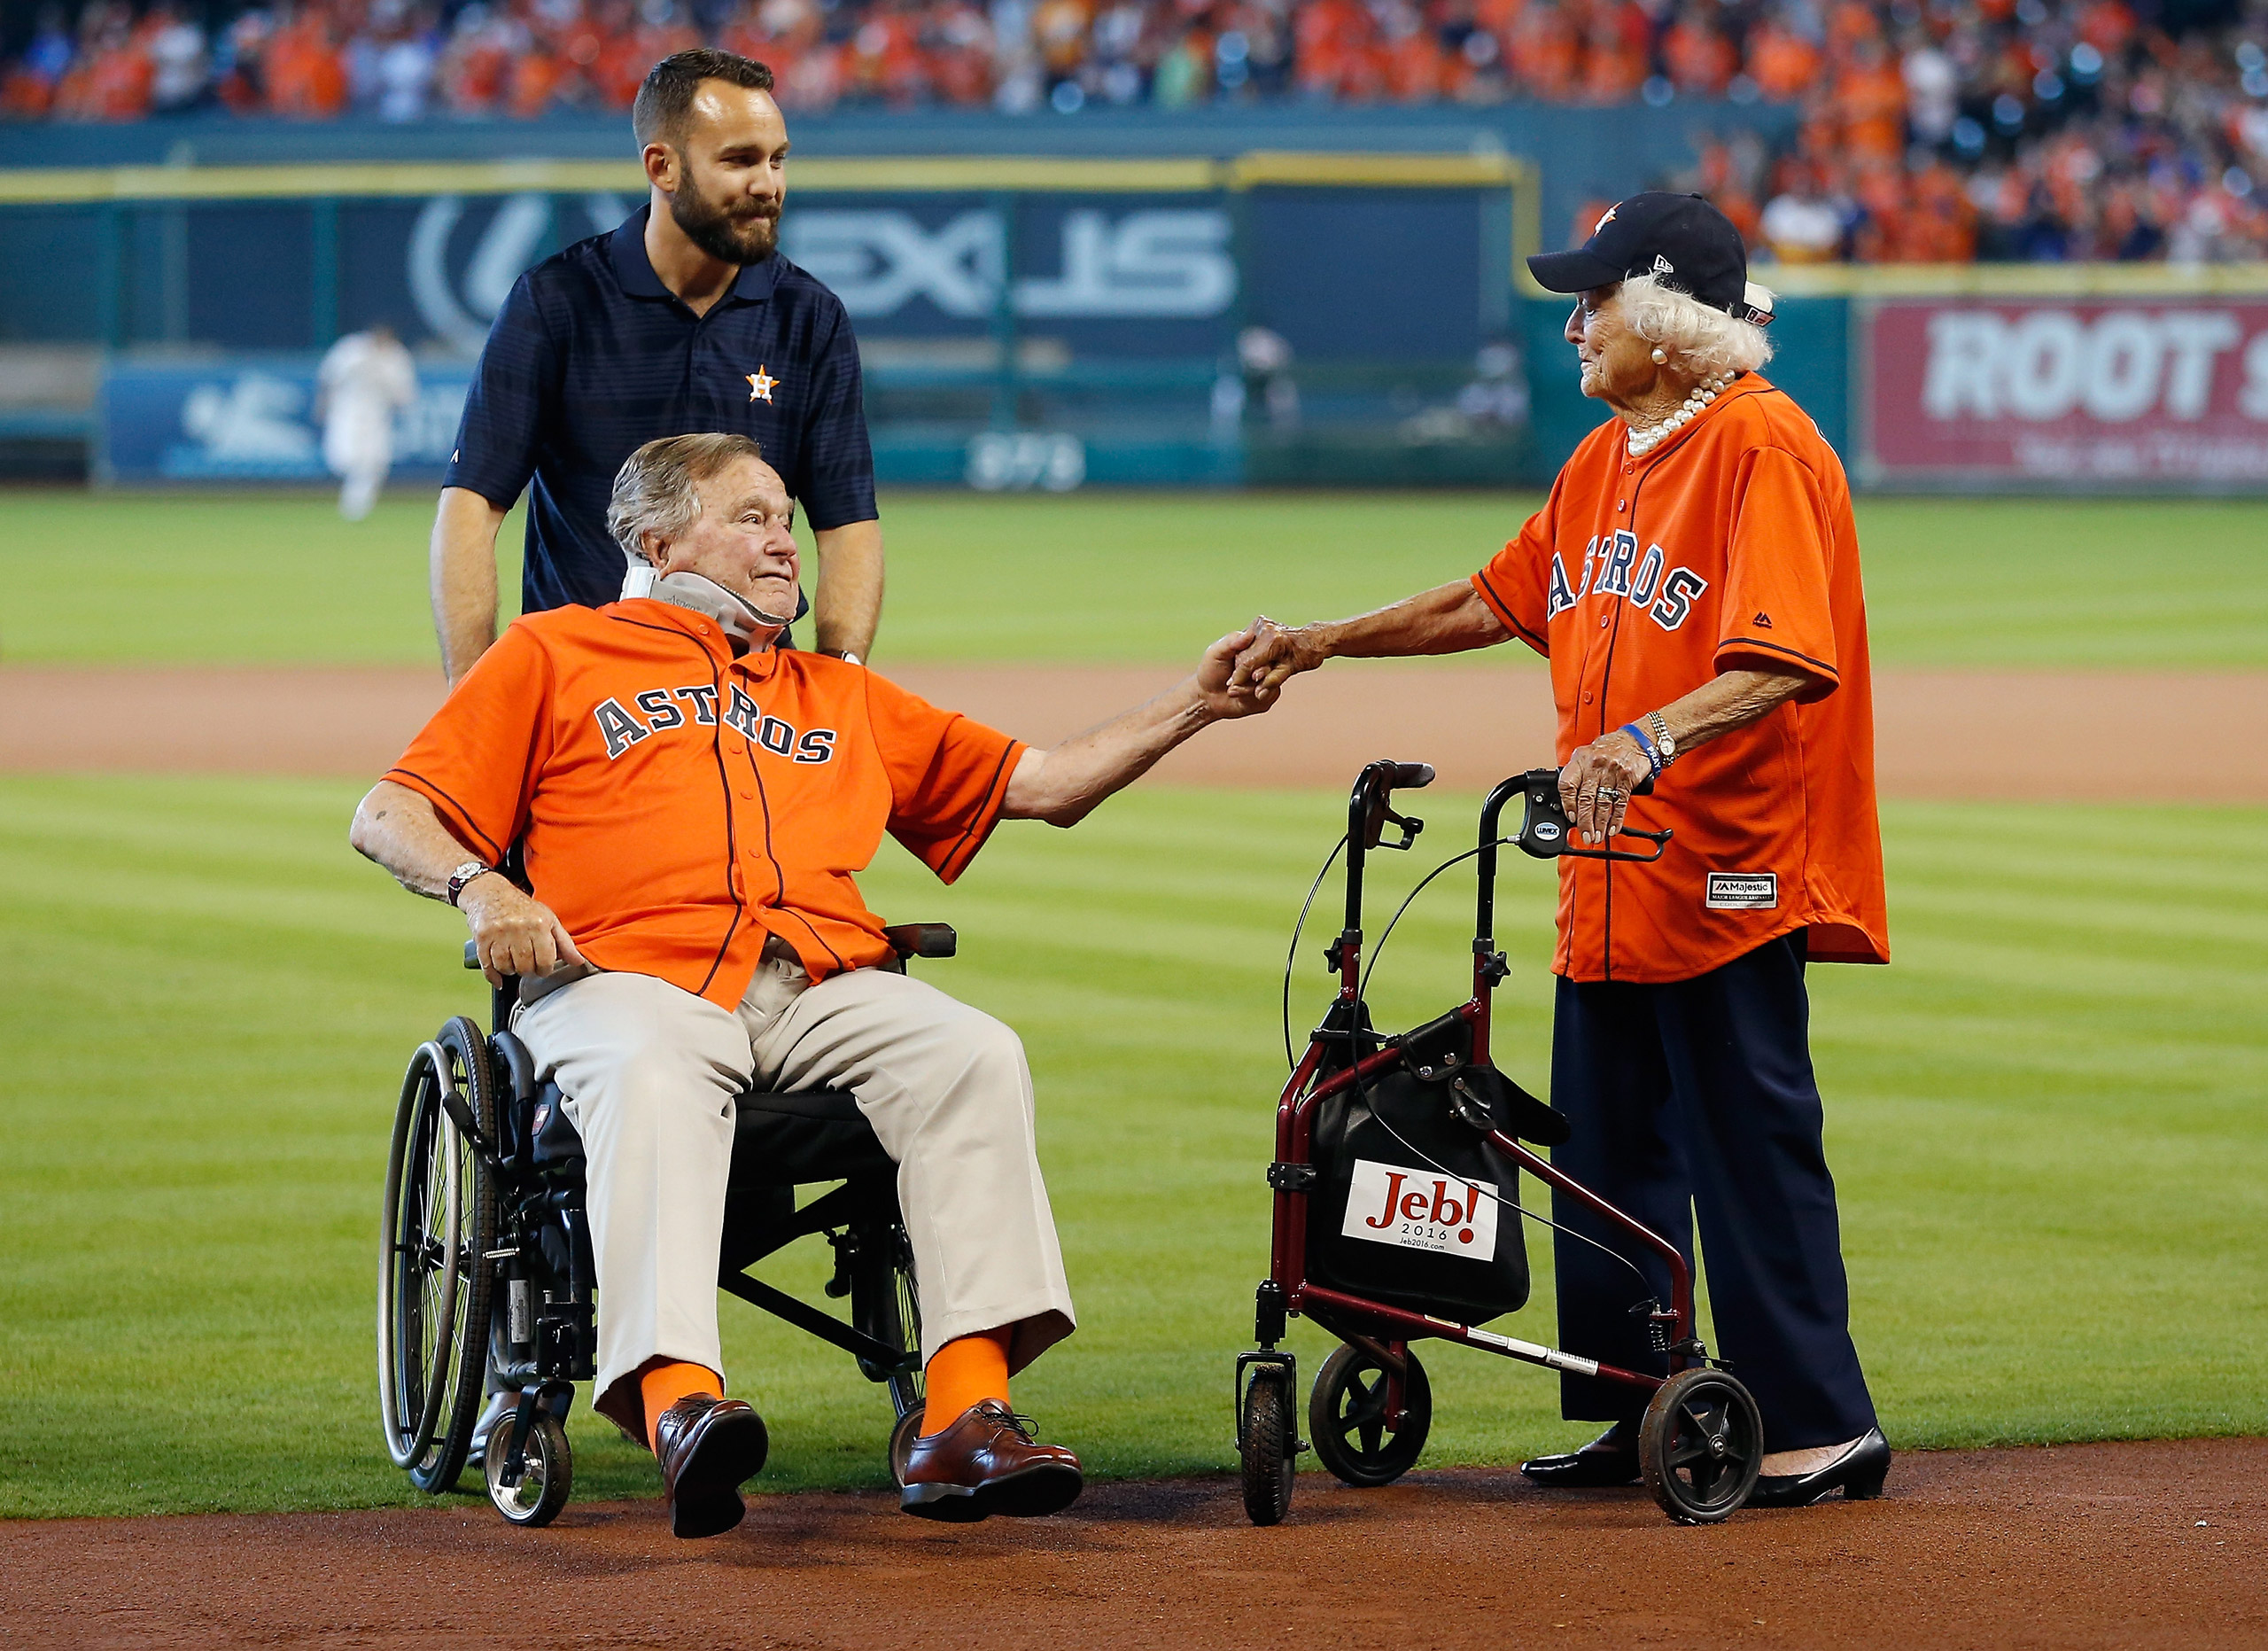 Former President George H.W. Bush and former First Lady Barbara Bush are introduced prior to throwing the ceremonial first pitch to kick off Game 3 of the American League Division Series between the Houston Astros and the Kansas City Royals at Minute Maid Park in Houston, TX on Oct. 11, 2015.